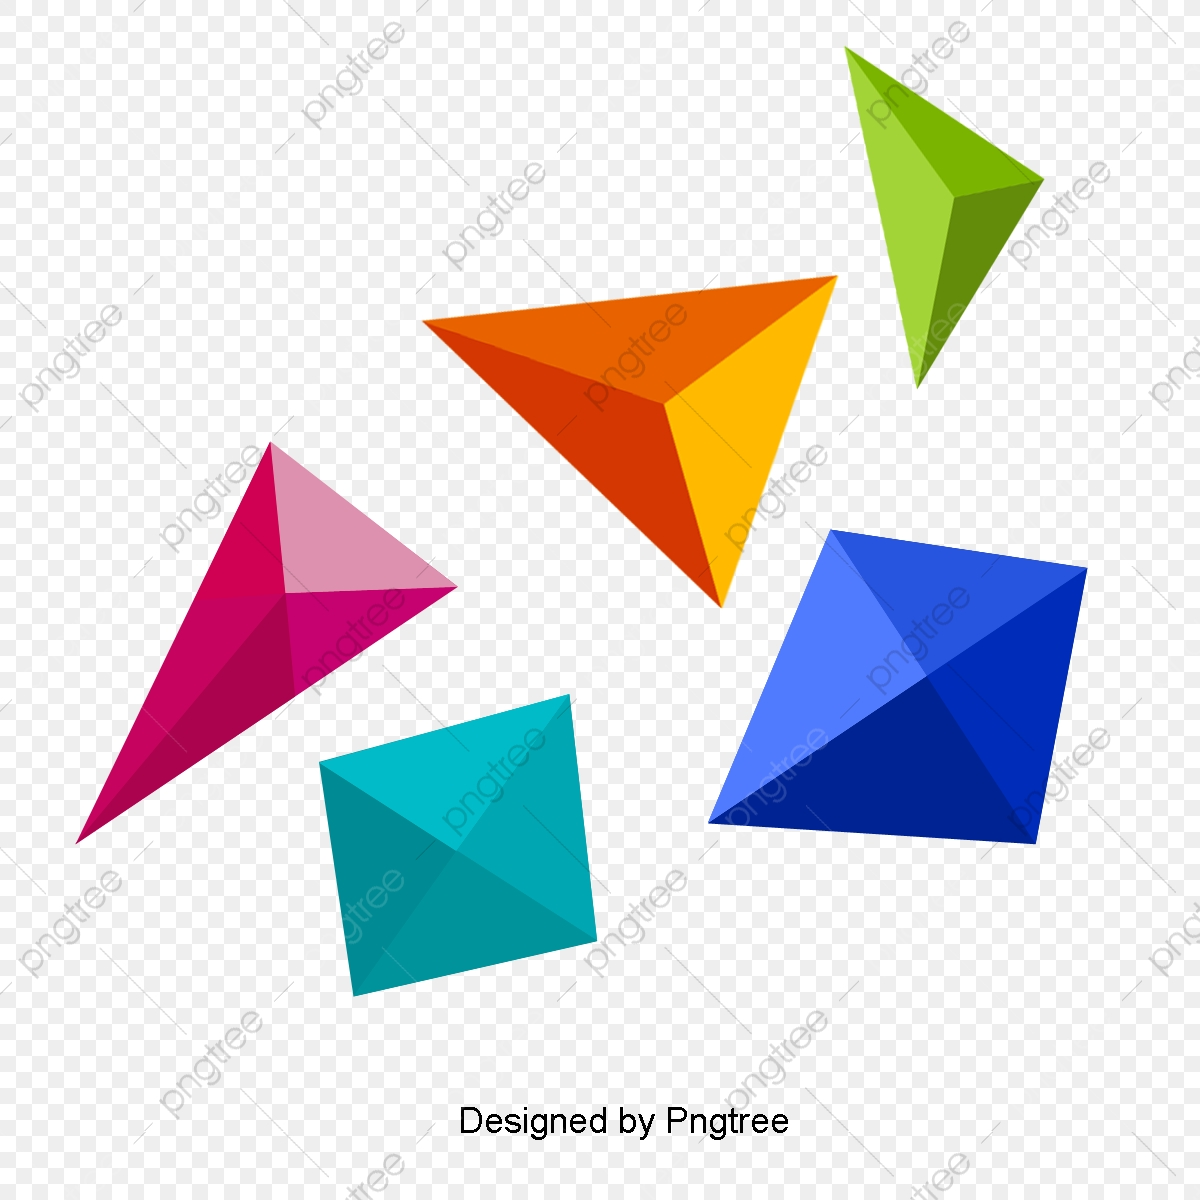 Geometry clipart colorful shape. Geometric pattern bright colors